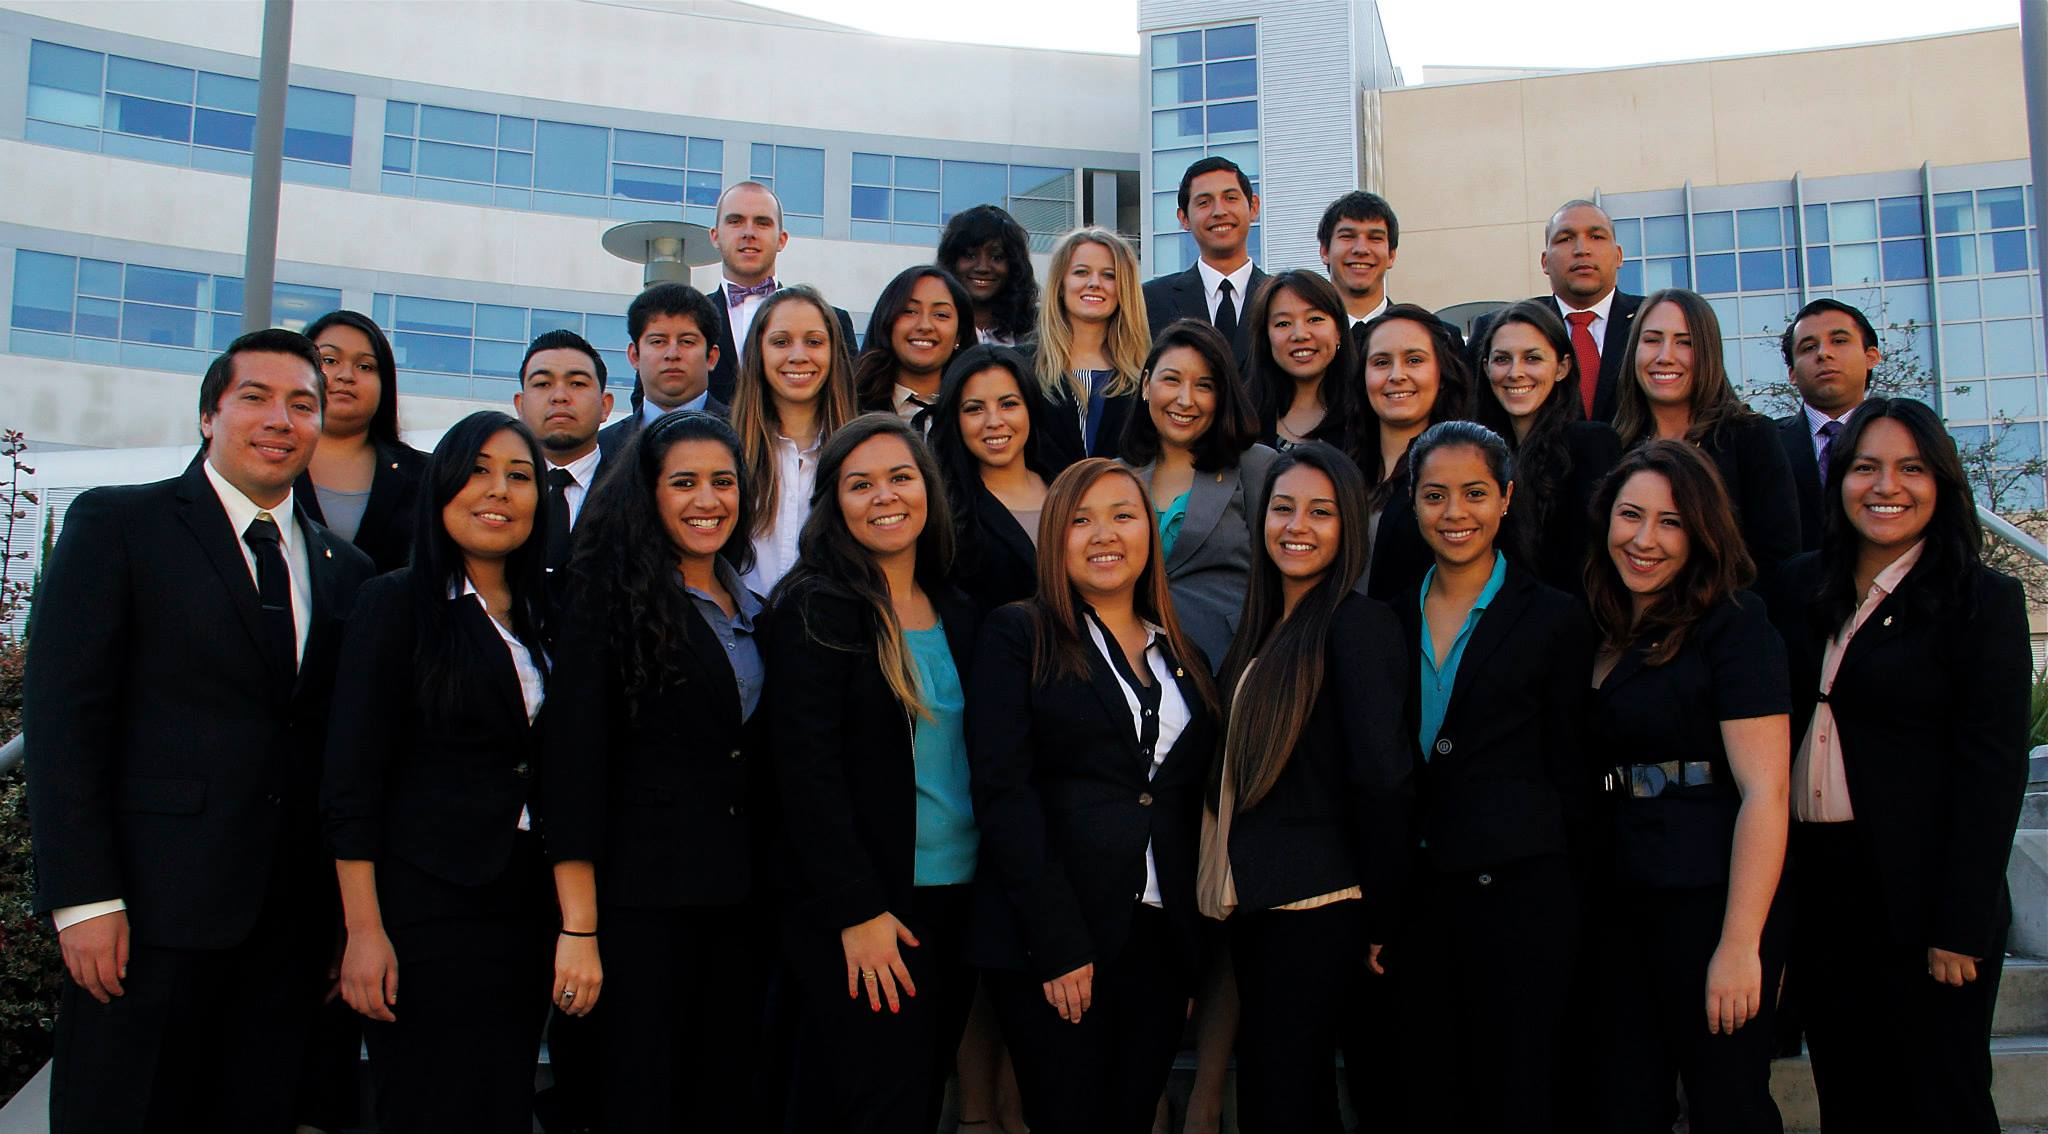 Alpha Kappa Psi is a professional business fraternity that motivates its members to learn new skills.